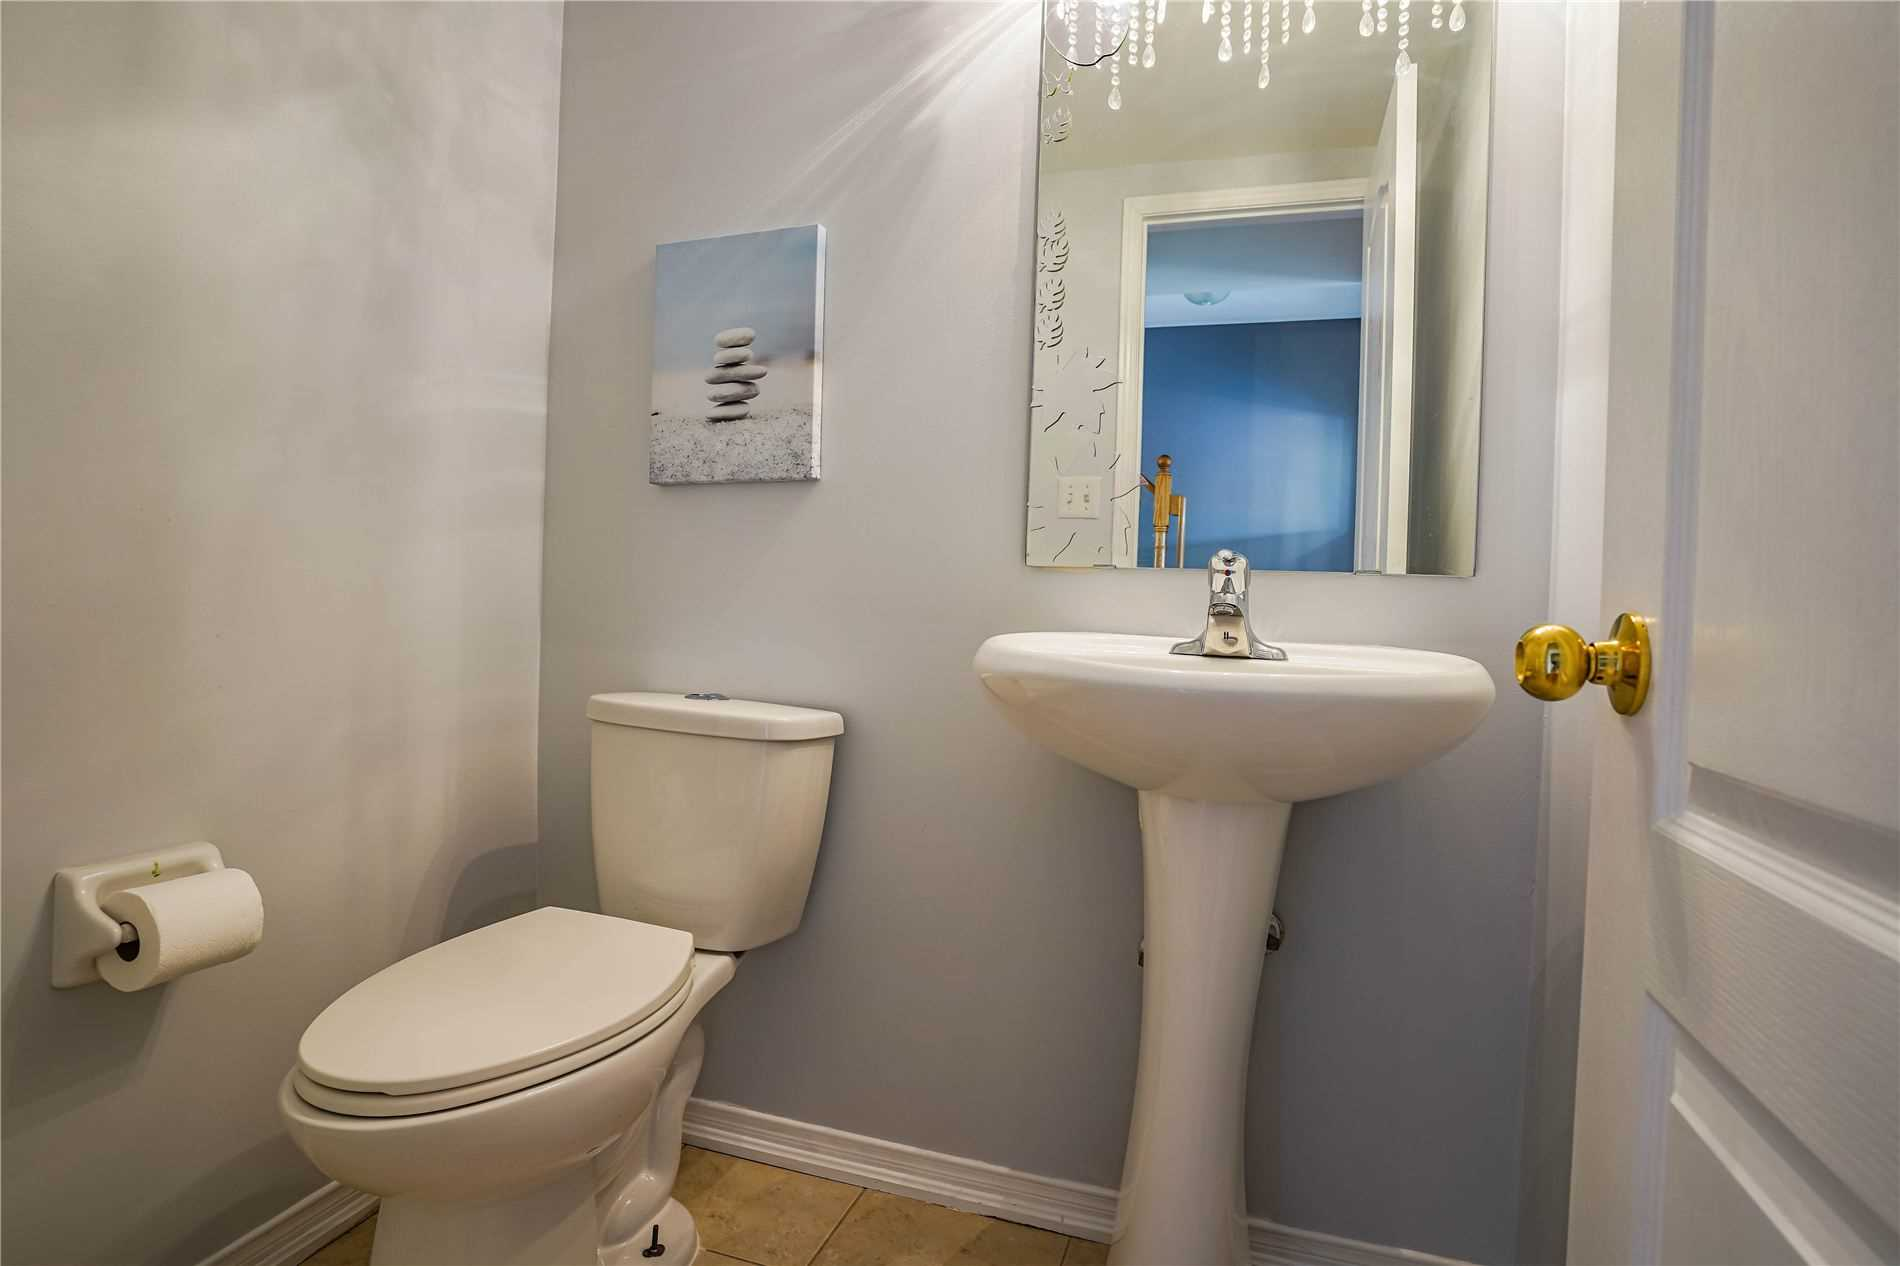 Image 2 of 25 showing inside of 3 Bedroom Condo Townhouse 3-Storey for Sale at 68 Oakins Lane W Unit# 34, Ajax L1T0H1